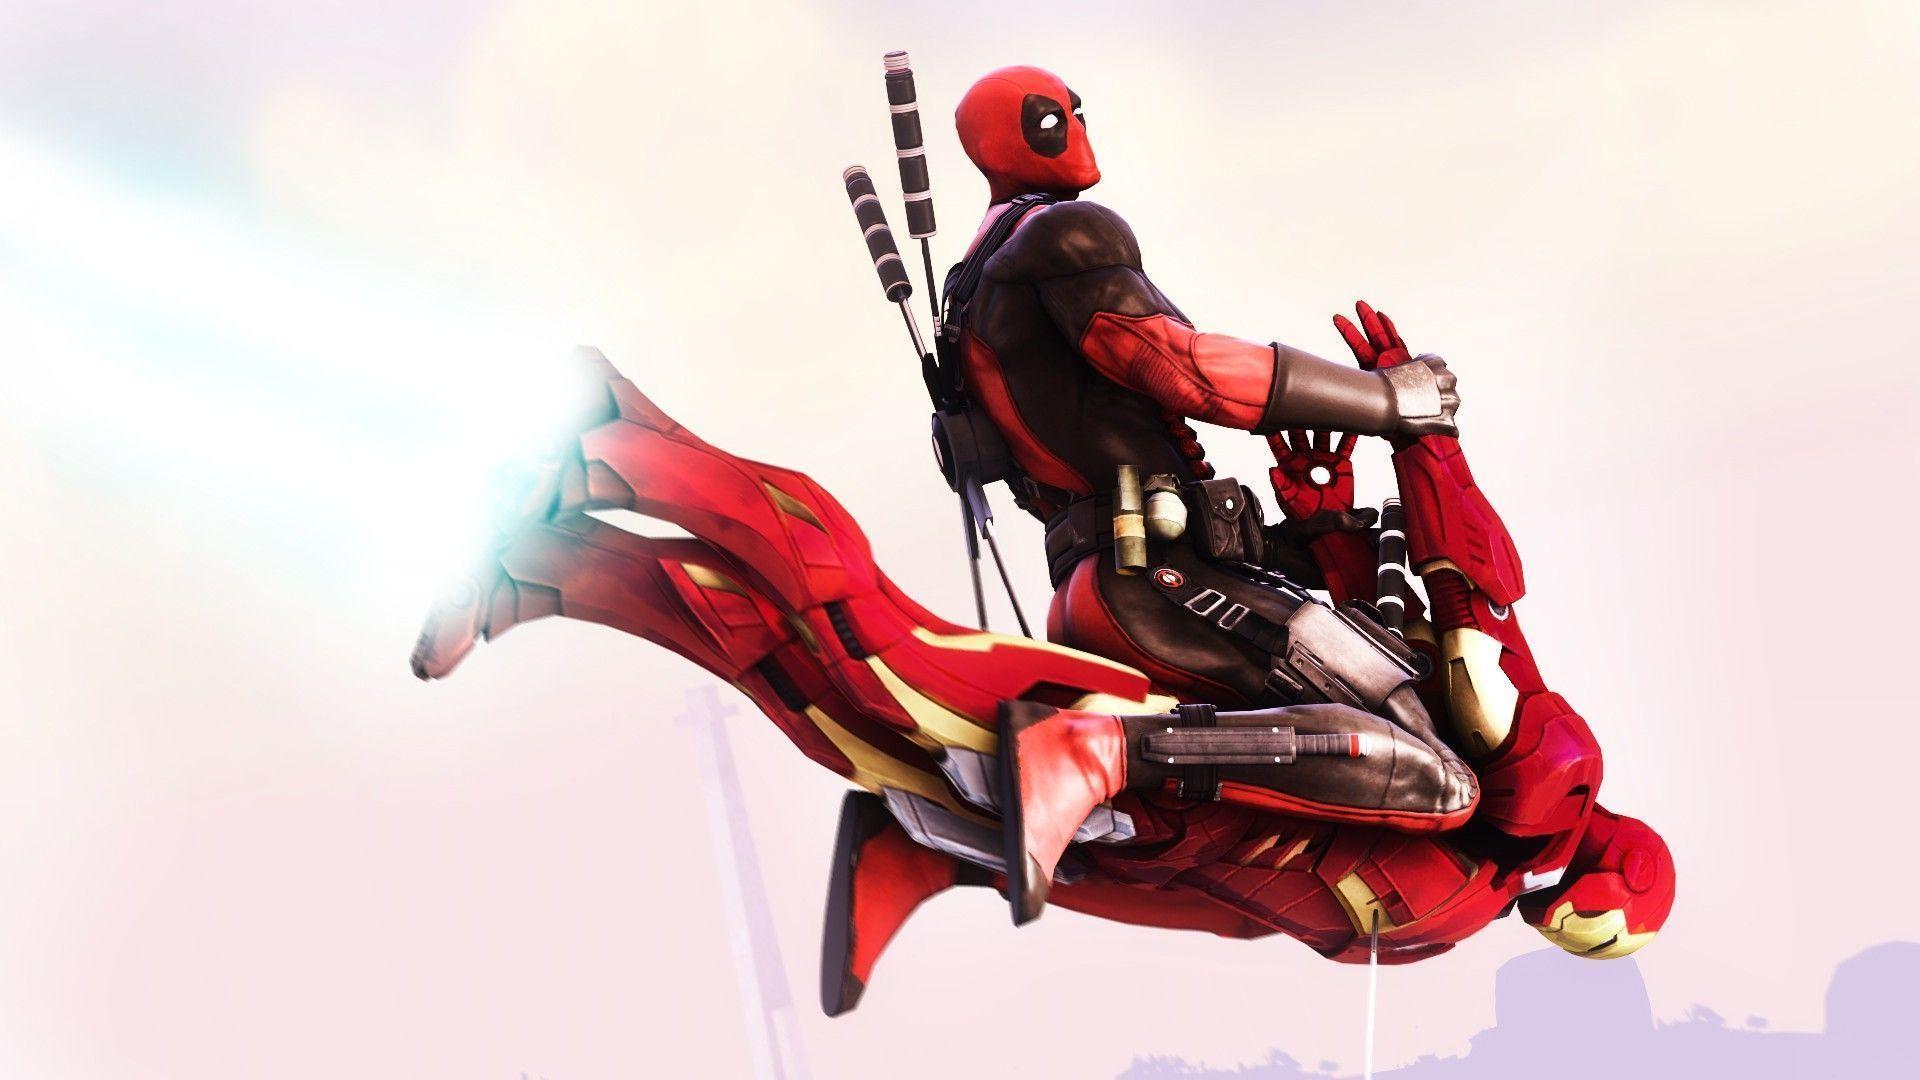 Deadpool flying on Iron Man Wallpapers #